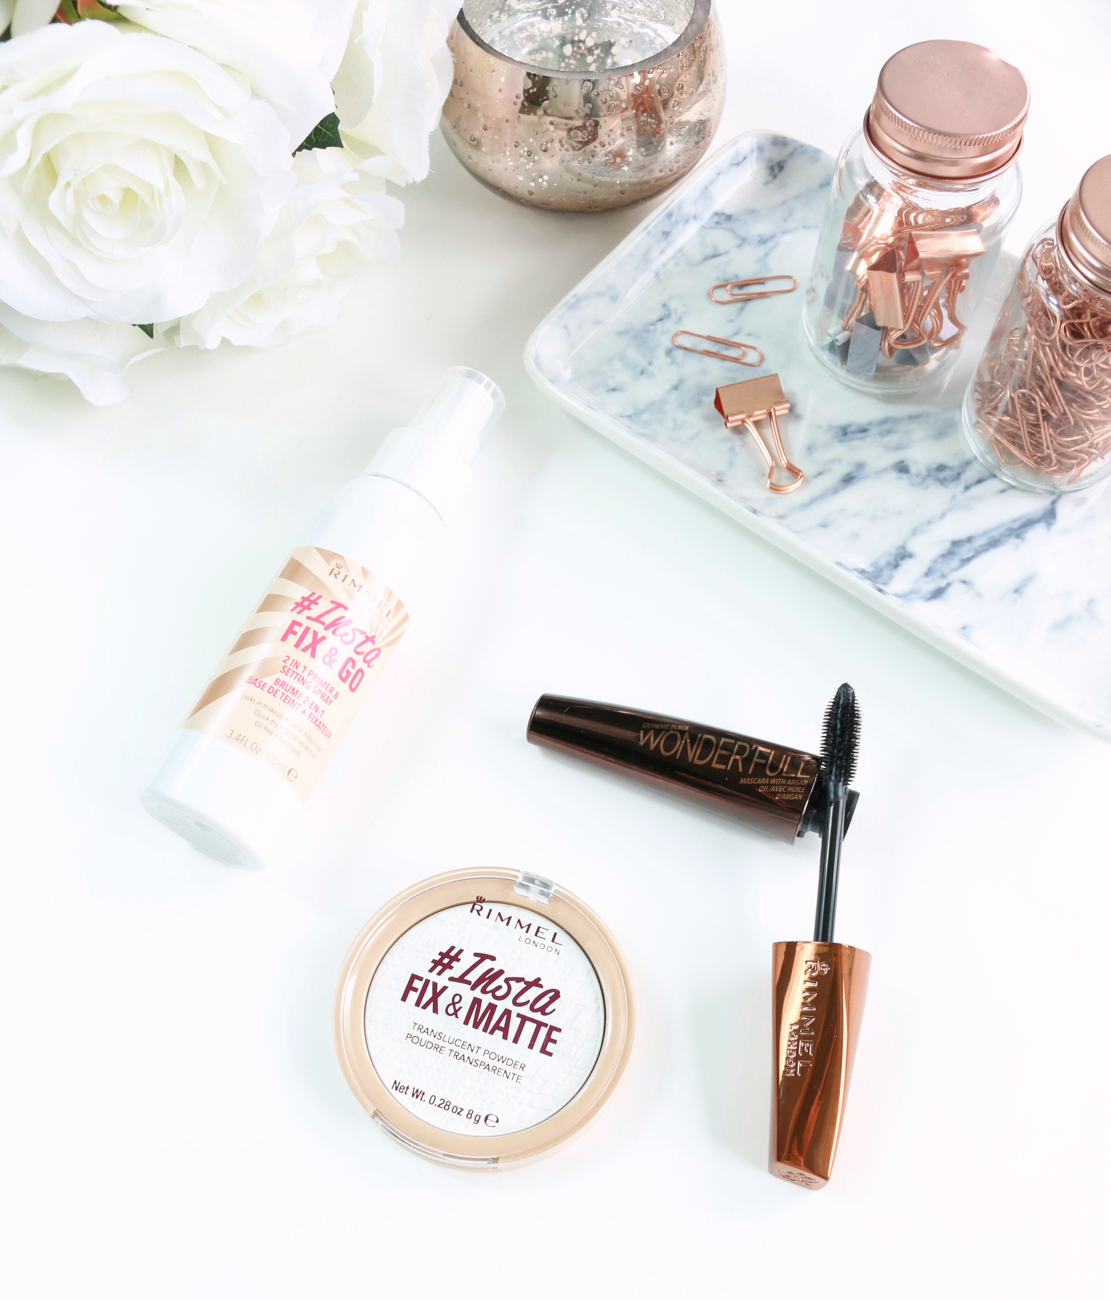 Rimmel #Insta Collection including the Fix & Go 2 in 1 Primer & Setting Spray, Fix & Matte Translucent Powder and the Wonderfull Mascara with Argan Oil.